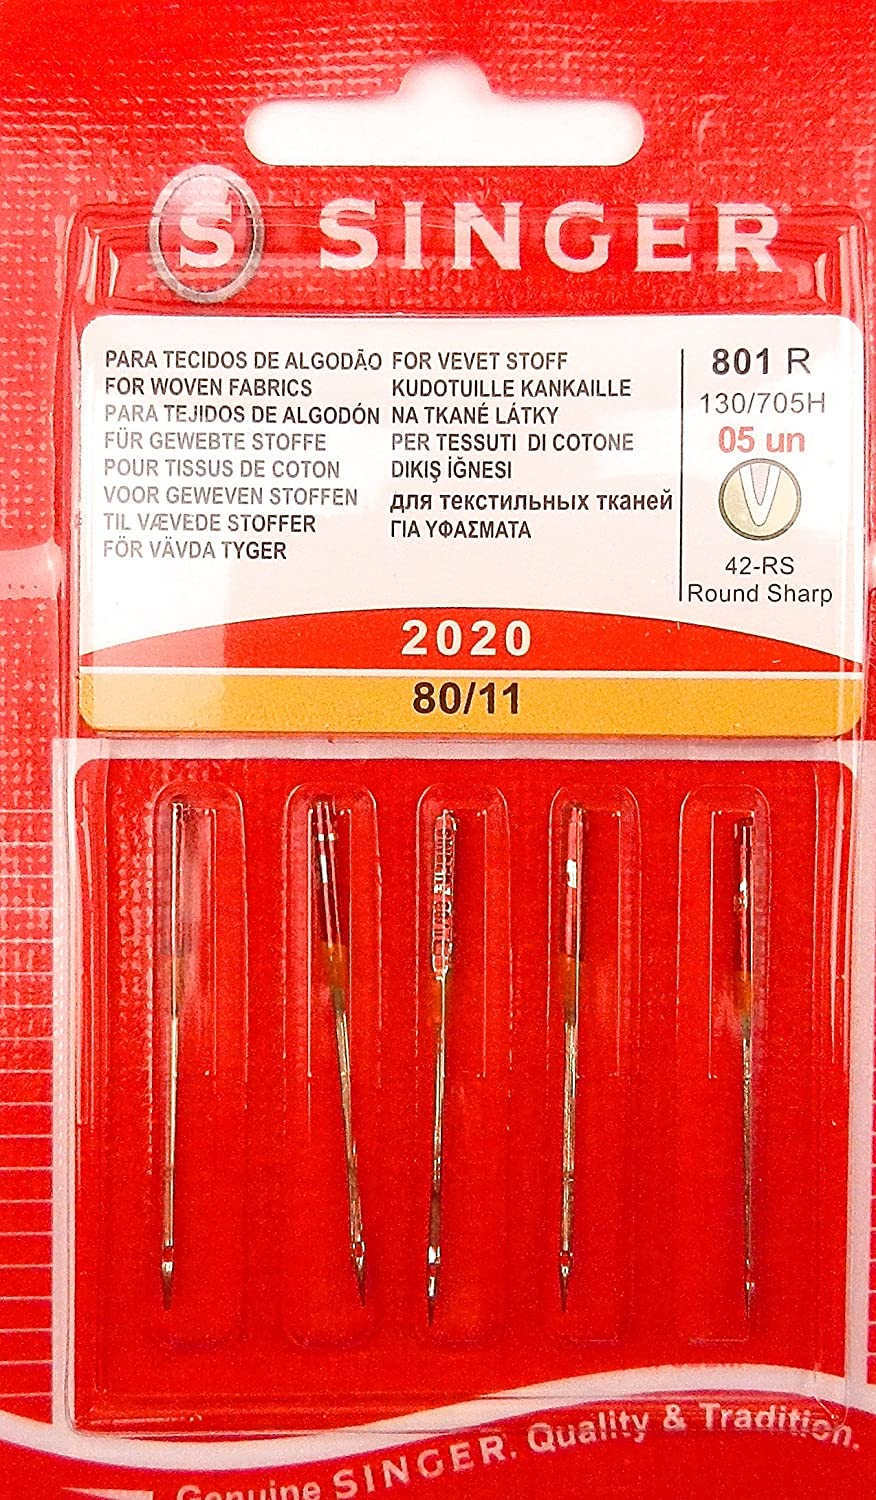 5 Original Singer Sewing Machines Needles 2020 size 80/11 for woven fabrics 130/705